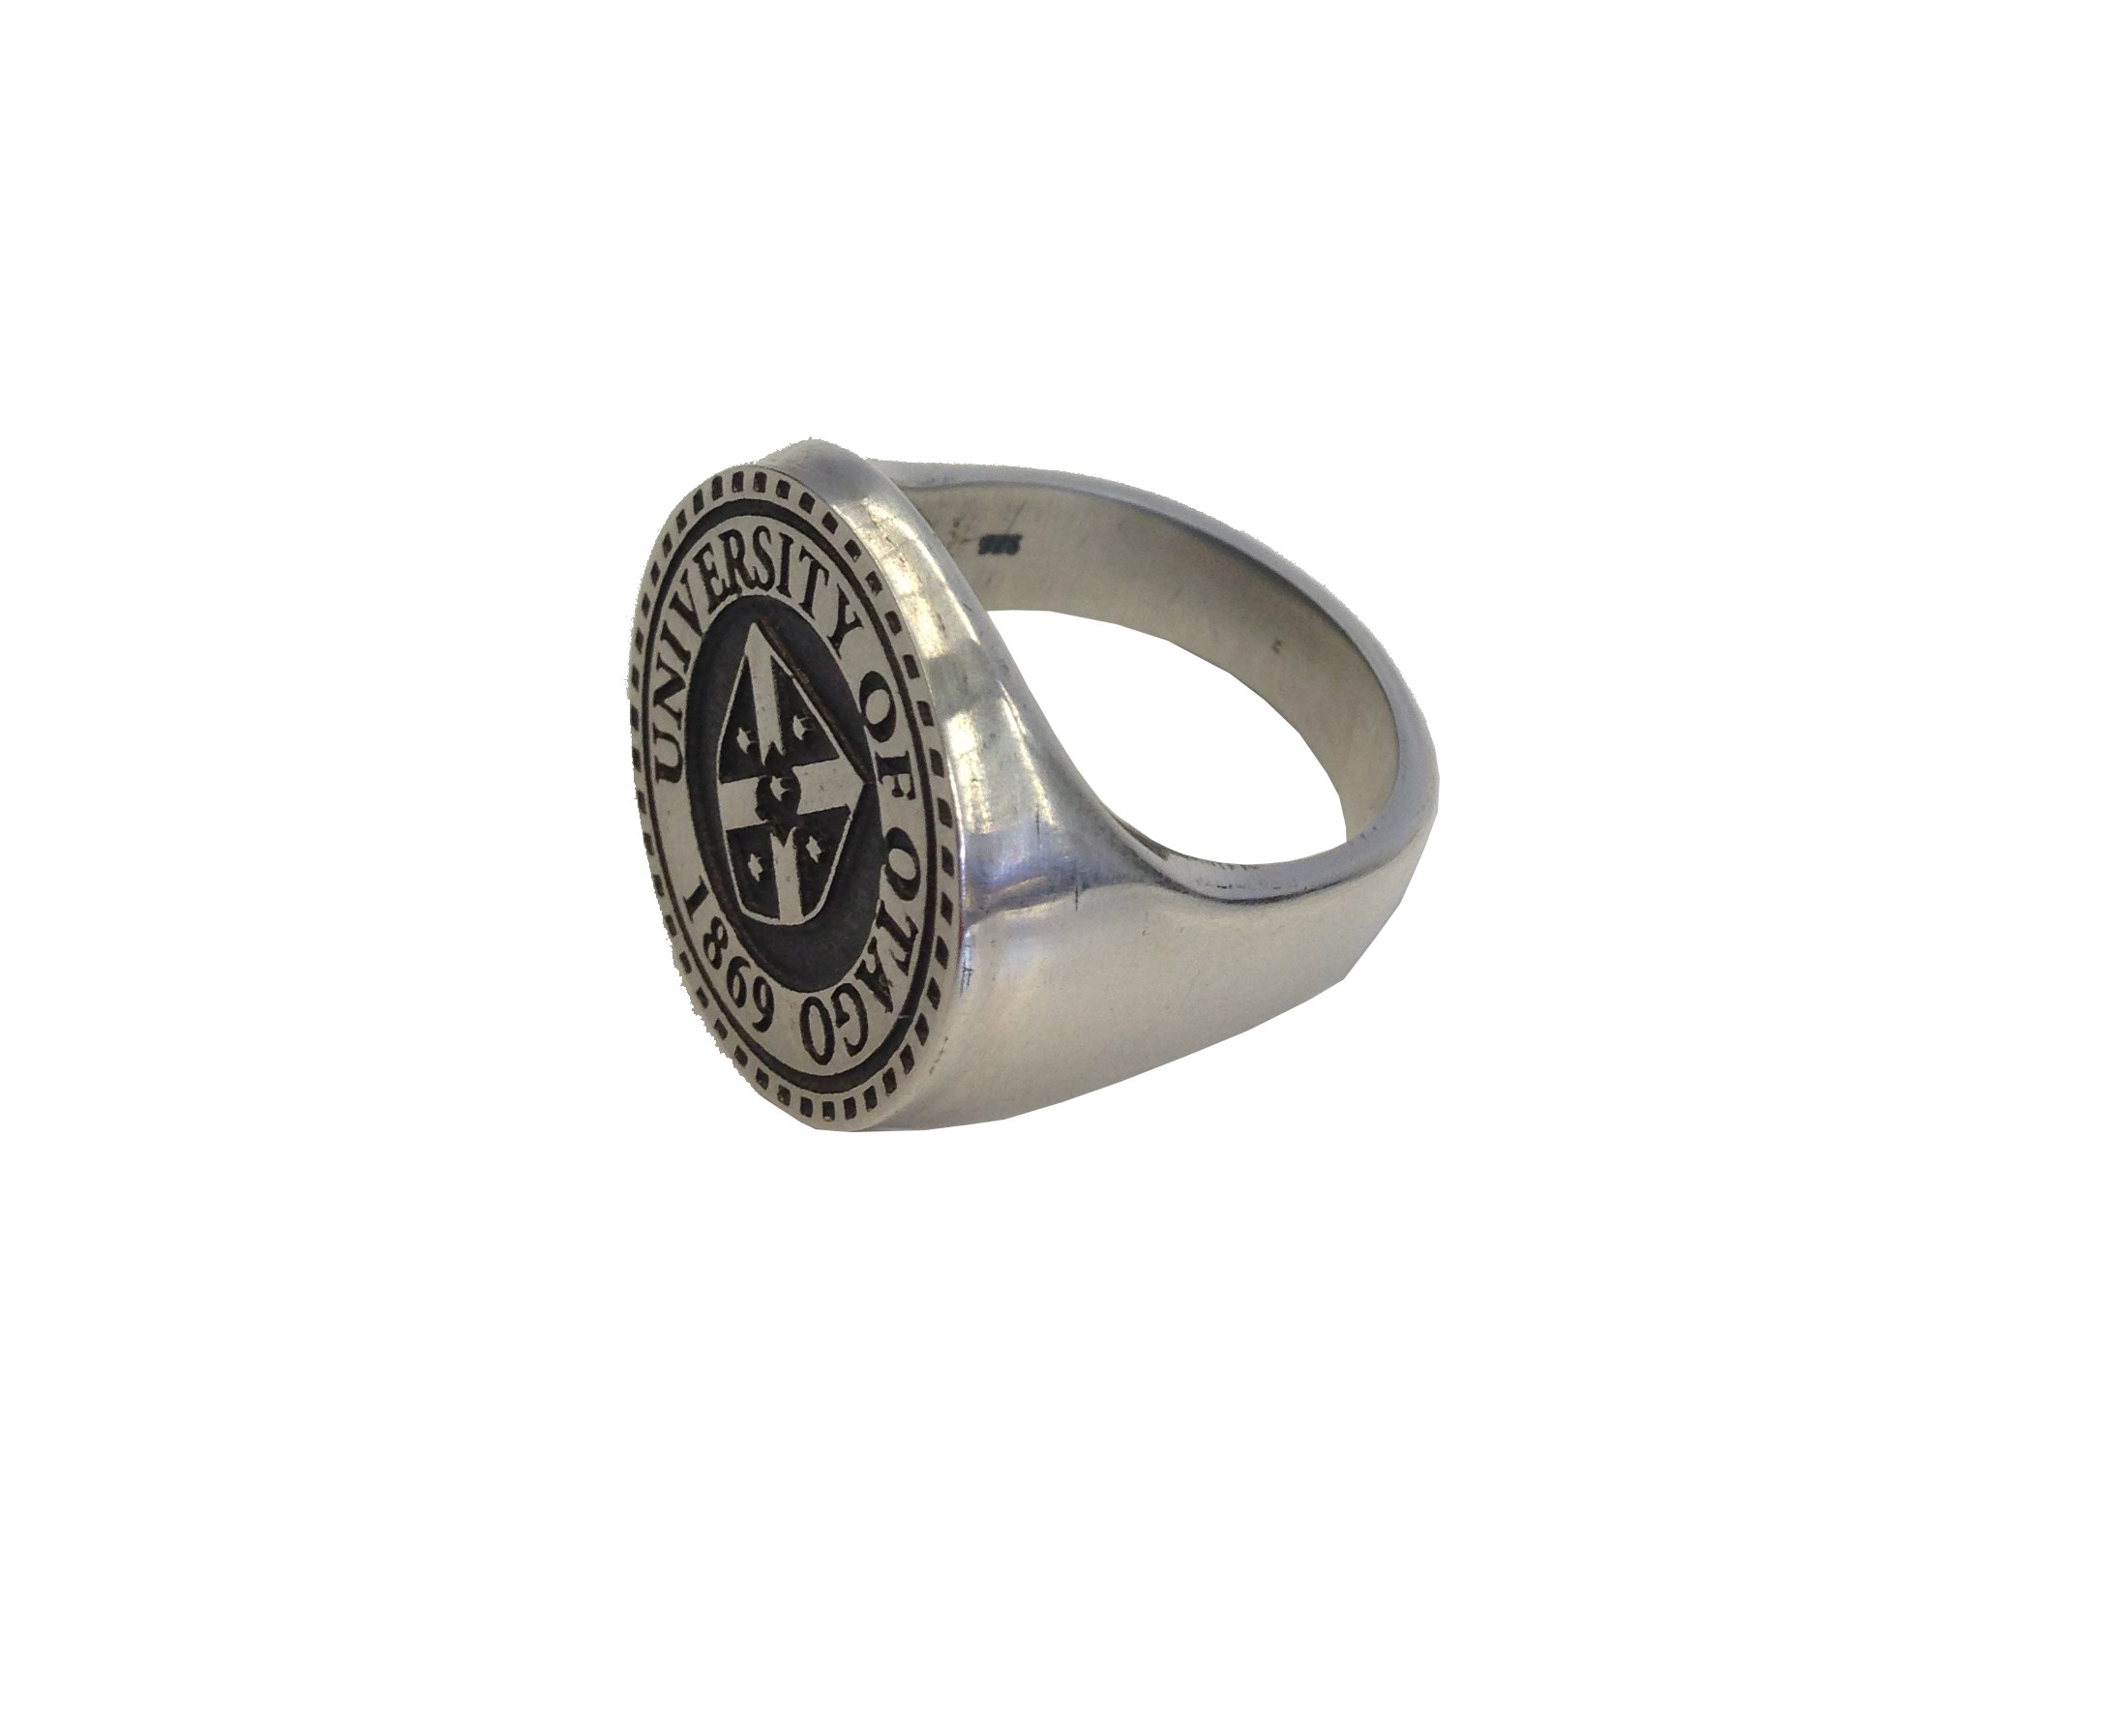 rings order news august class upstate your monday ring graduation usc